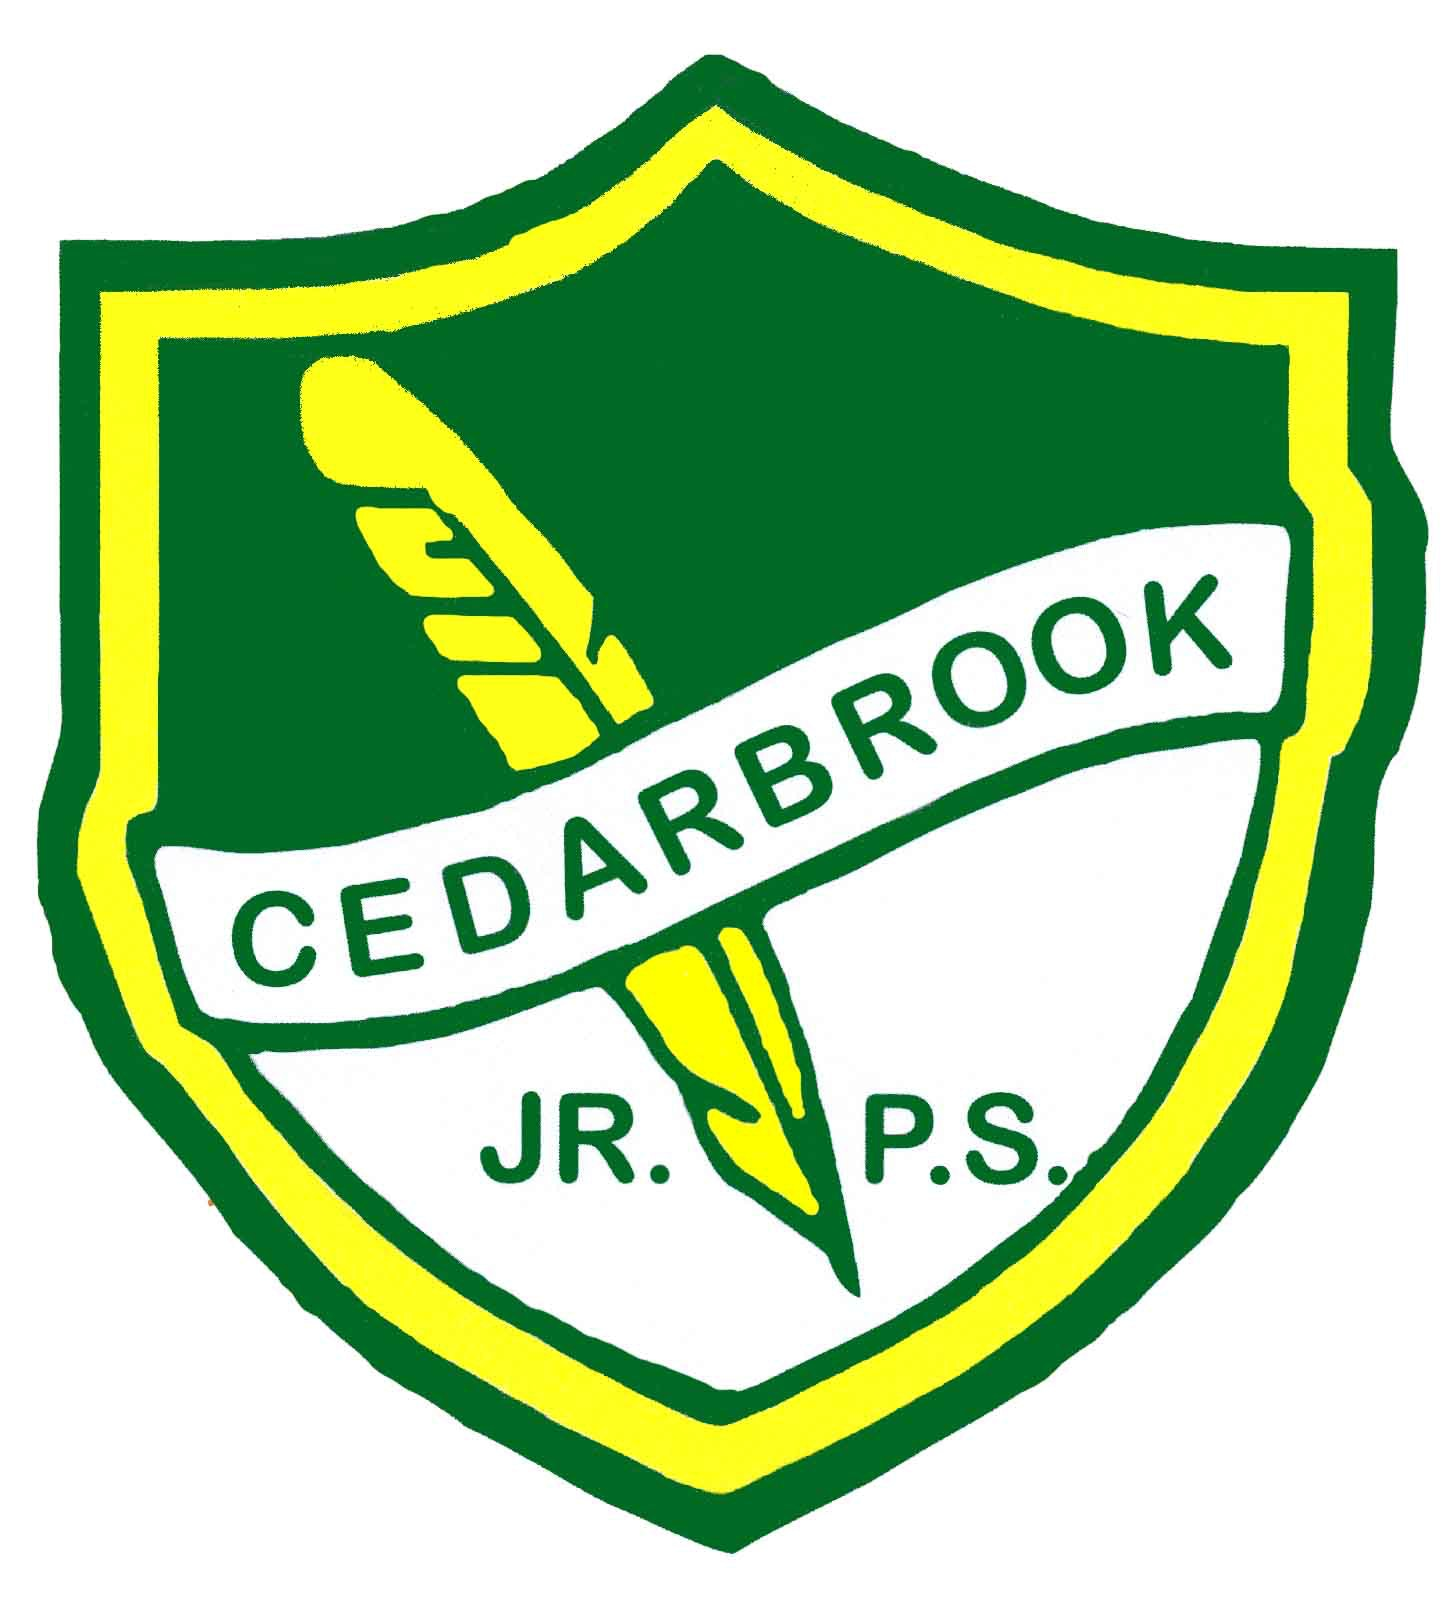 Cedarbrook is a great place to learn!